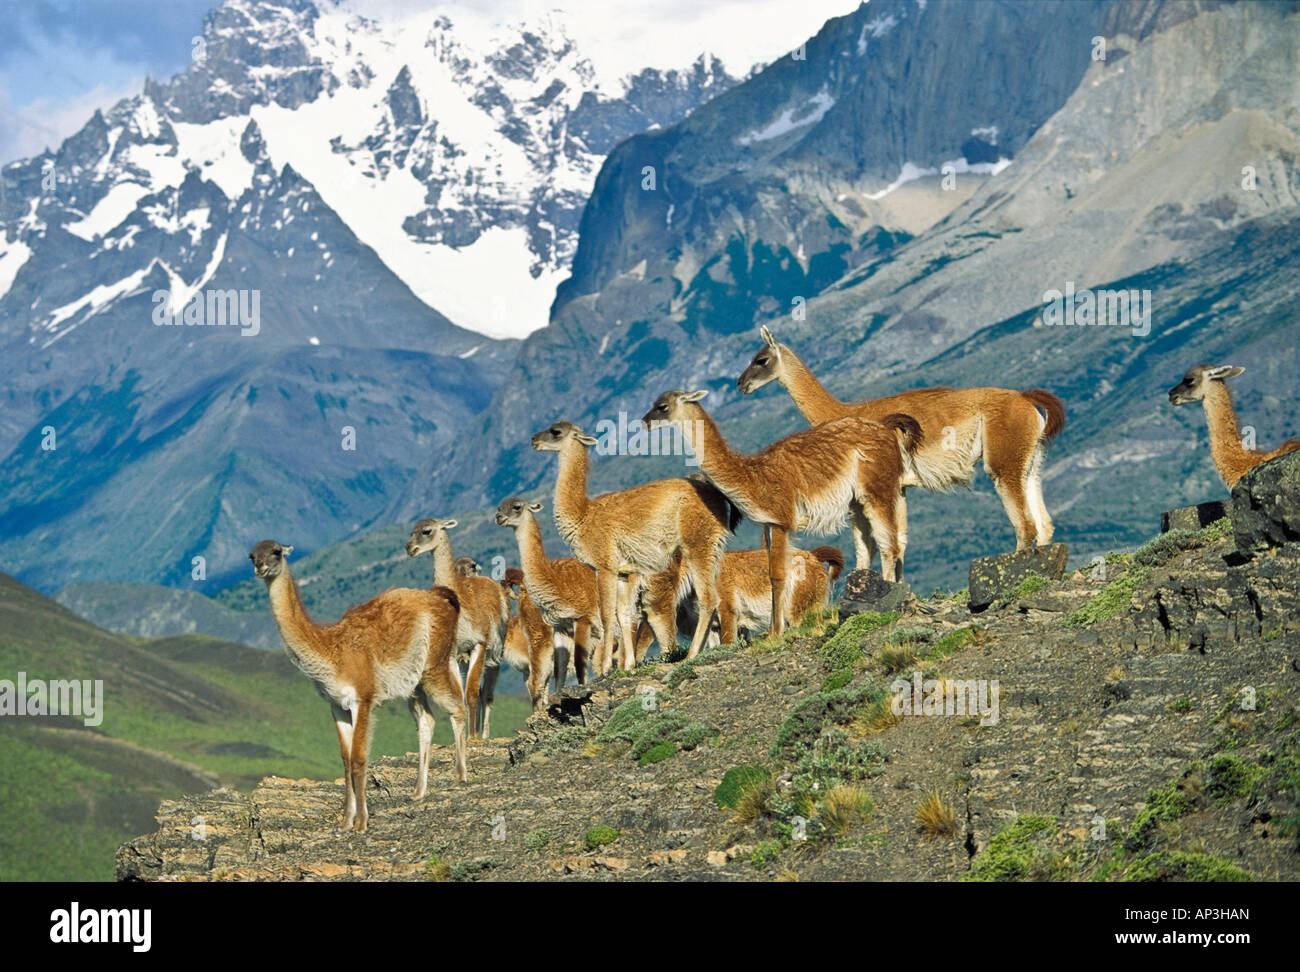 Guanacos, Lama guanicoe, Cuernos del Paine, Paine mountains, Torres del Paine Nationalpark, Patagonia, Chile - Stock Image